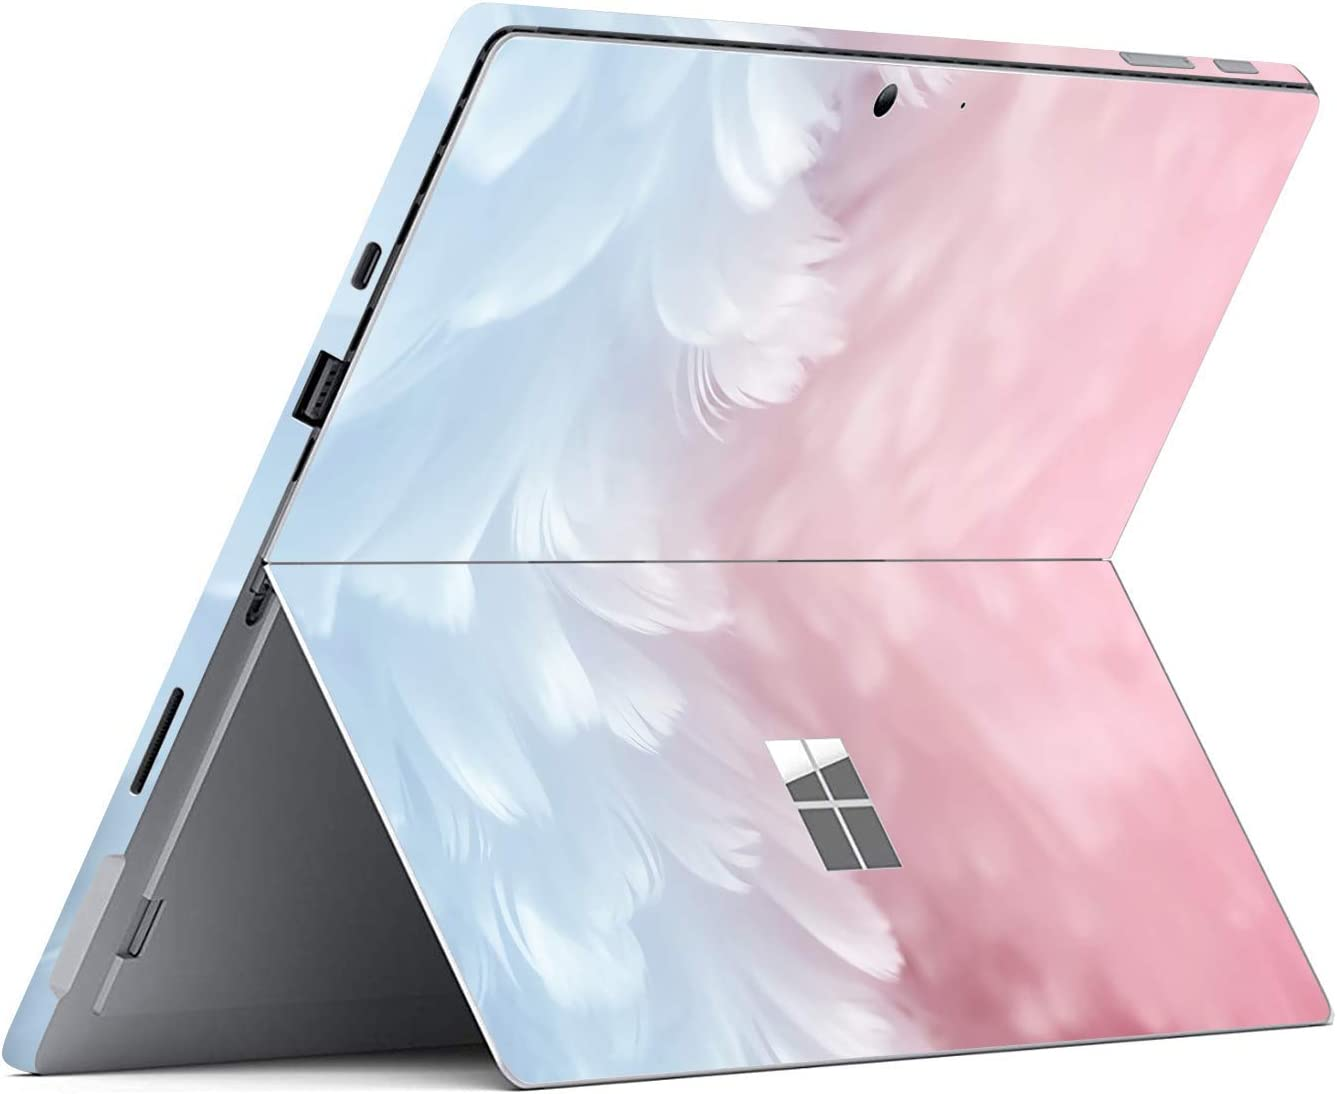 MasiBloom Decal Sticker for Microsoft Surface Pro 7 (2019 Released) 12.3 inch Anti-Scratch Vinyl Protective Cover Skin (for 12.3 inch Surface Pro 7, Feather)